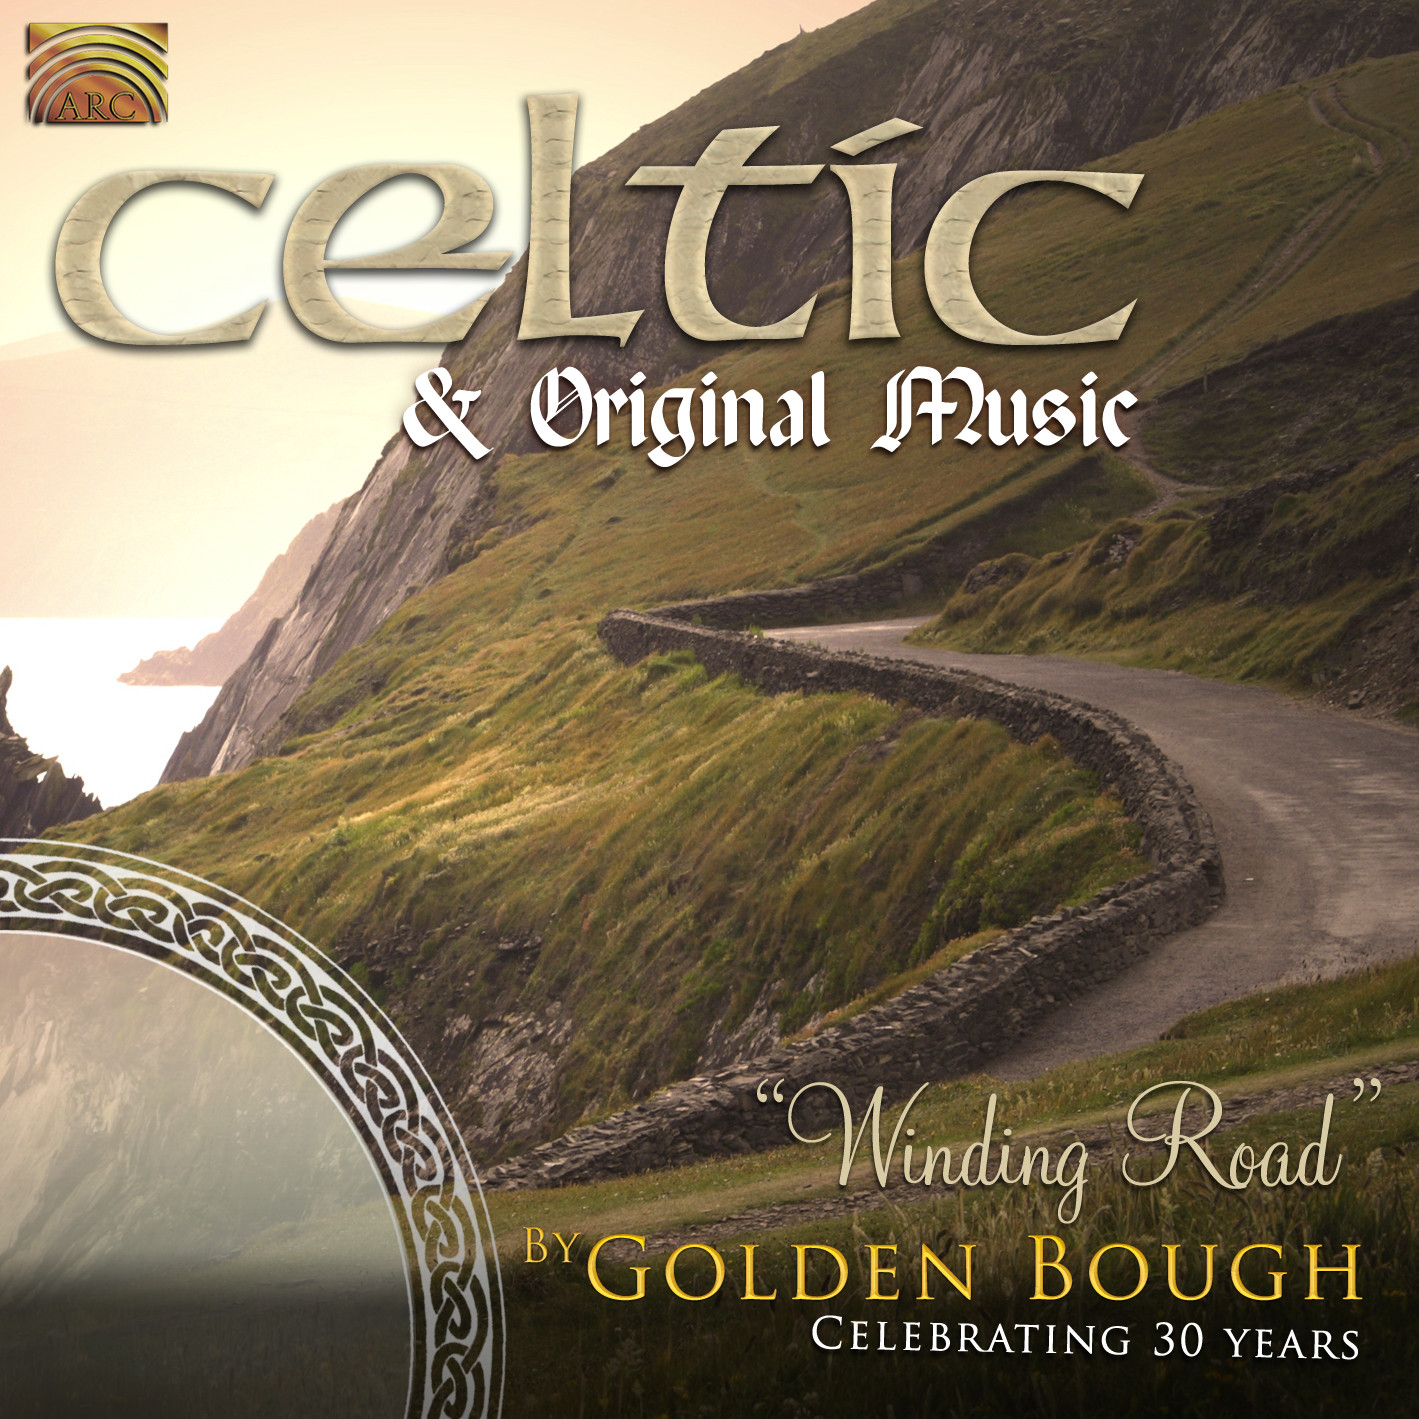 EUCD2294 Celtic & Original Music - Winding Road